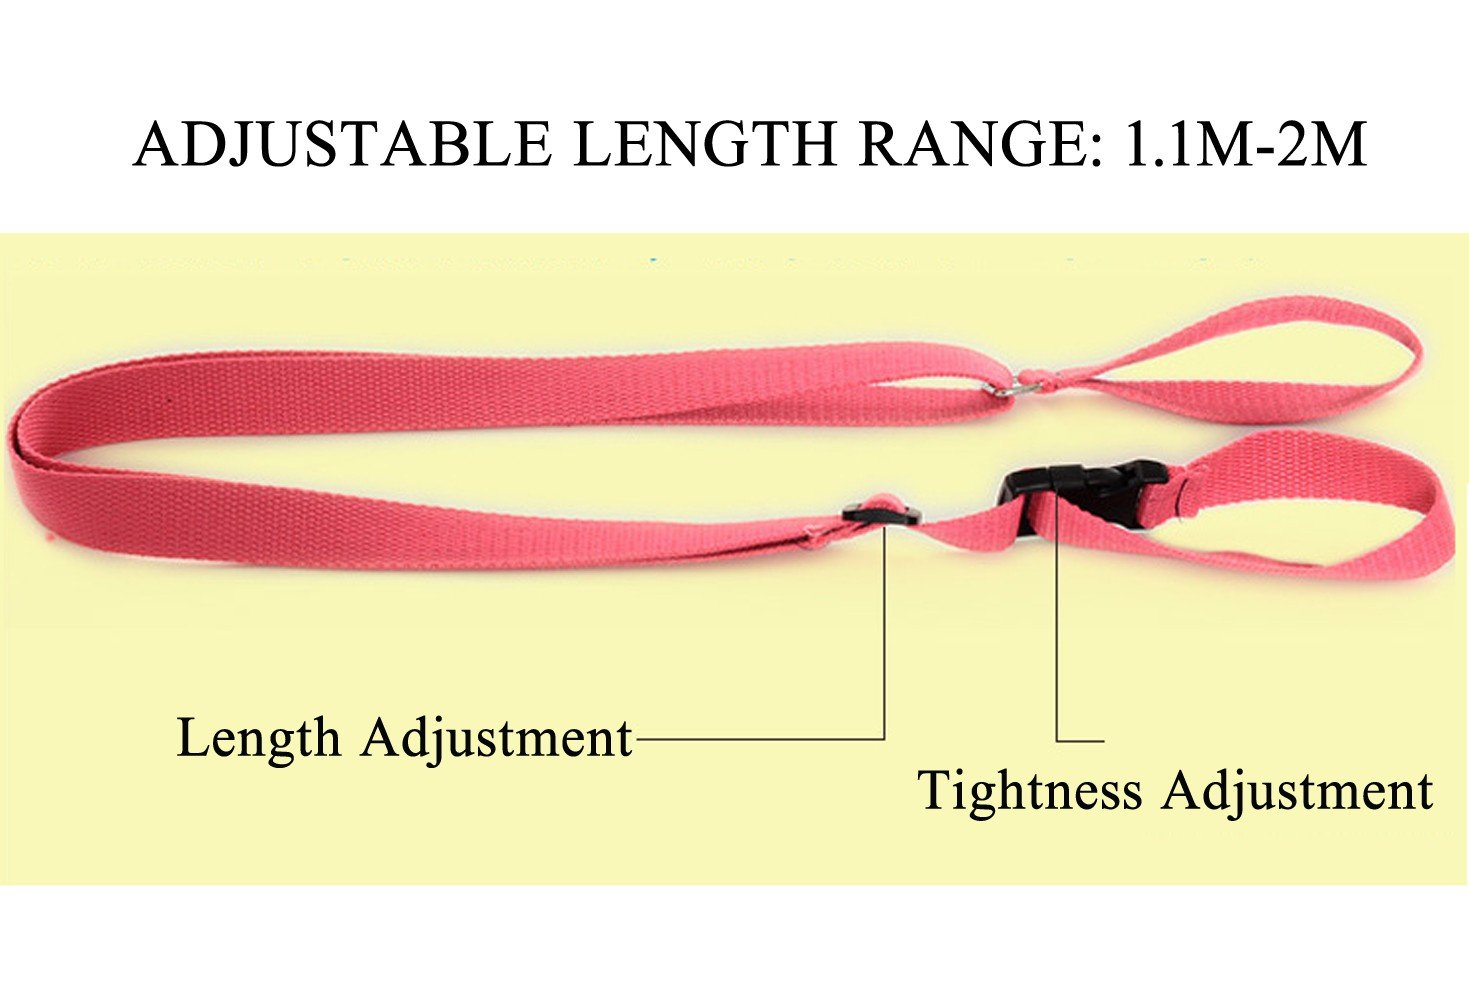 2M- 3 Pack Cotton Outdoor Backpack Leash Child Safety Traction Rope Summer Anti-lost Wristband Belt Safety Harness Toddler Walking Assistant